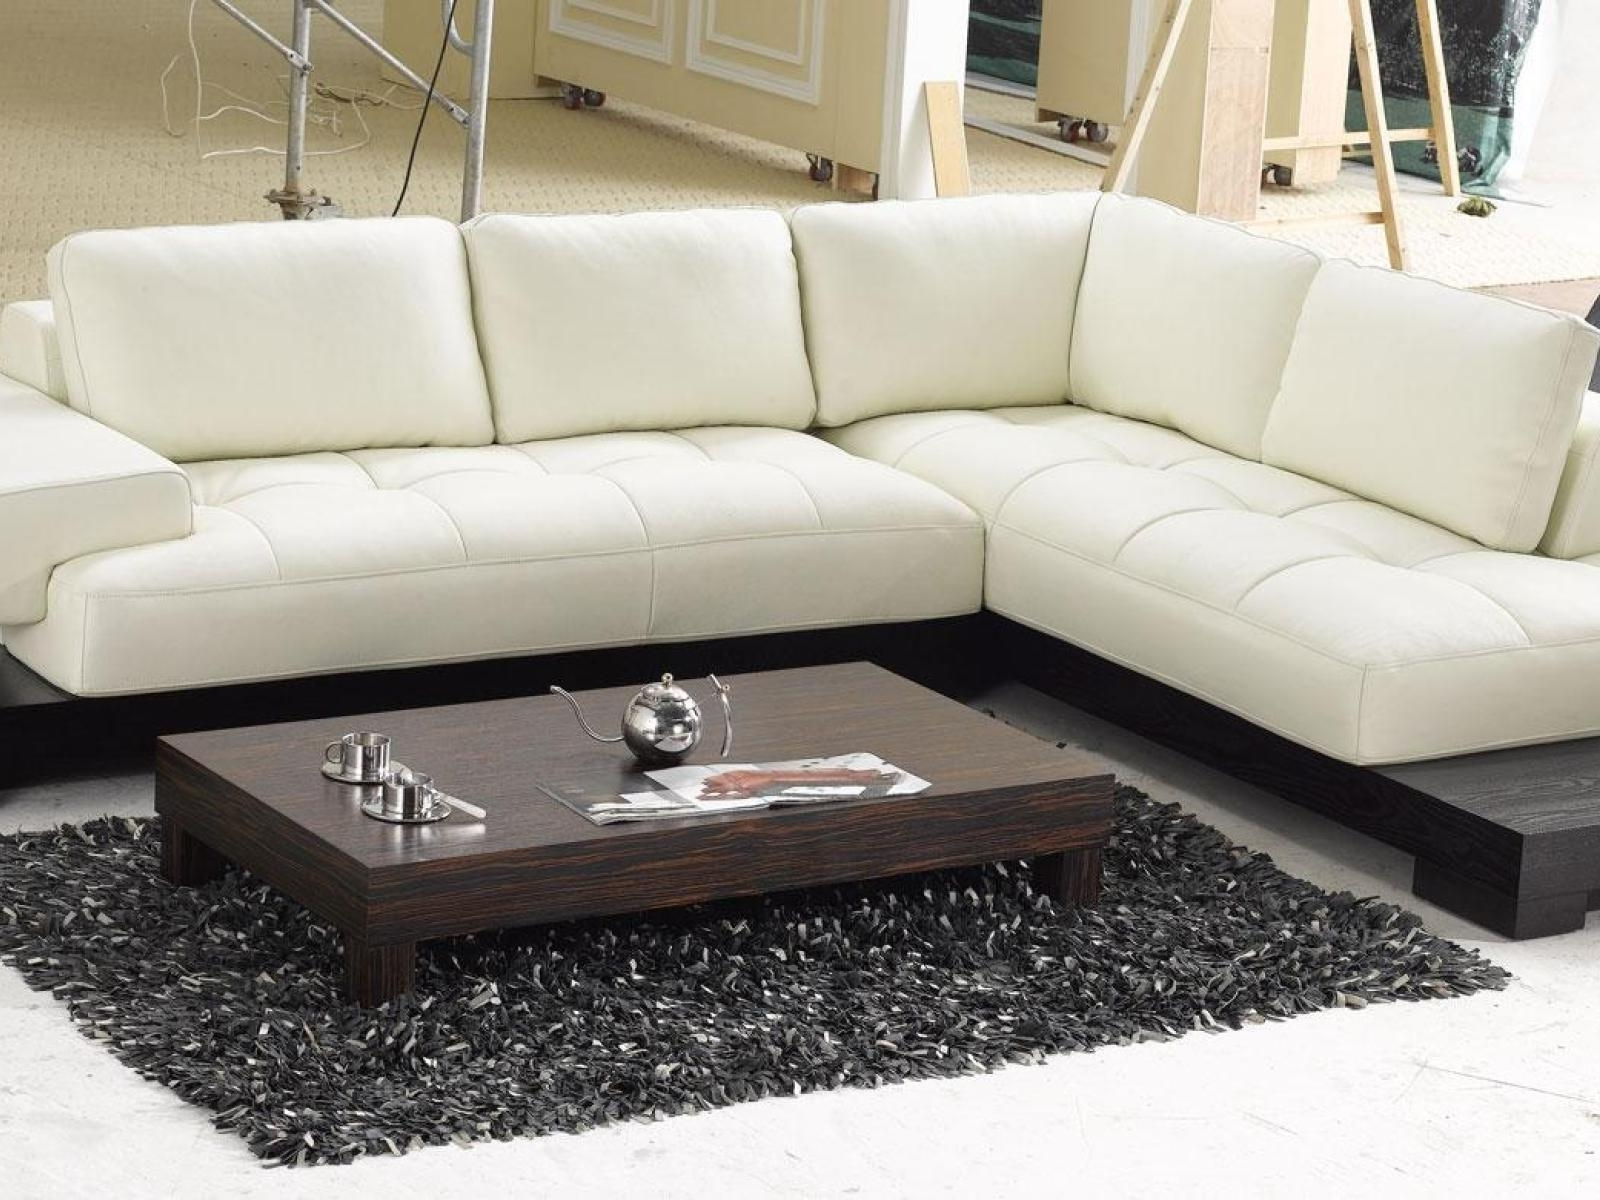 Furniture Awesome Contemporary Leather Couches Modern White Sofas Regarding Well Known High Point Nc Sectional Sofas (View 6 of 20)